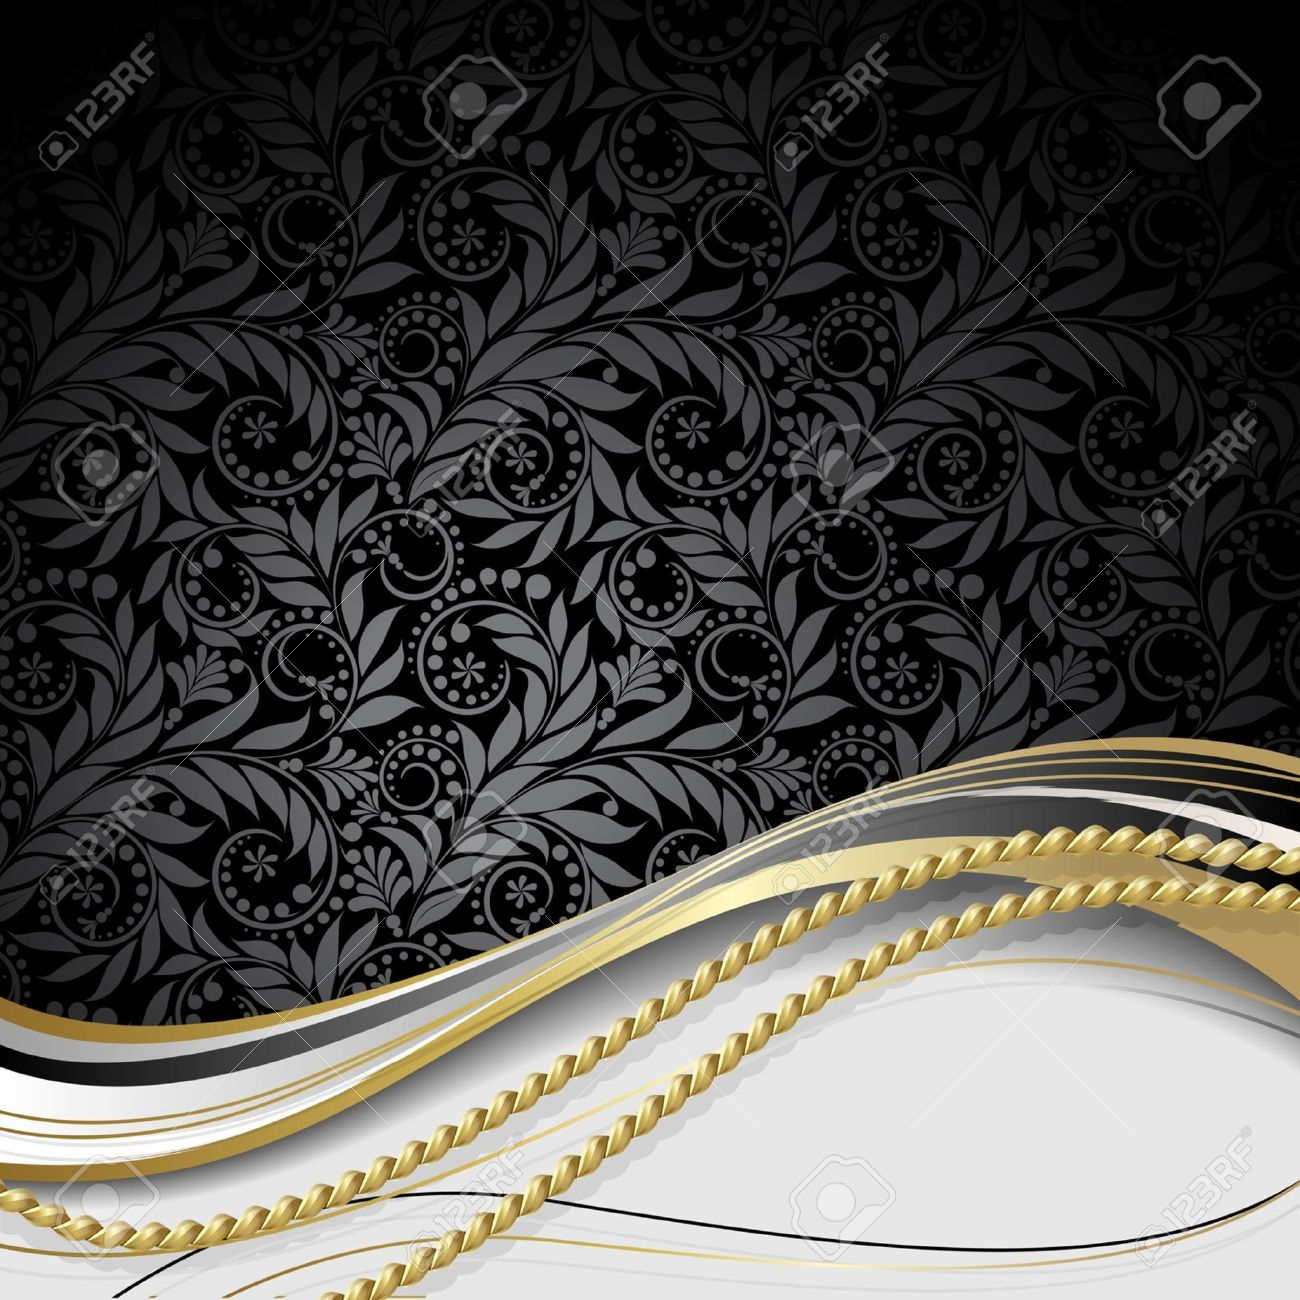 Black background with flowers and leaves and gold rope. - 9567686